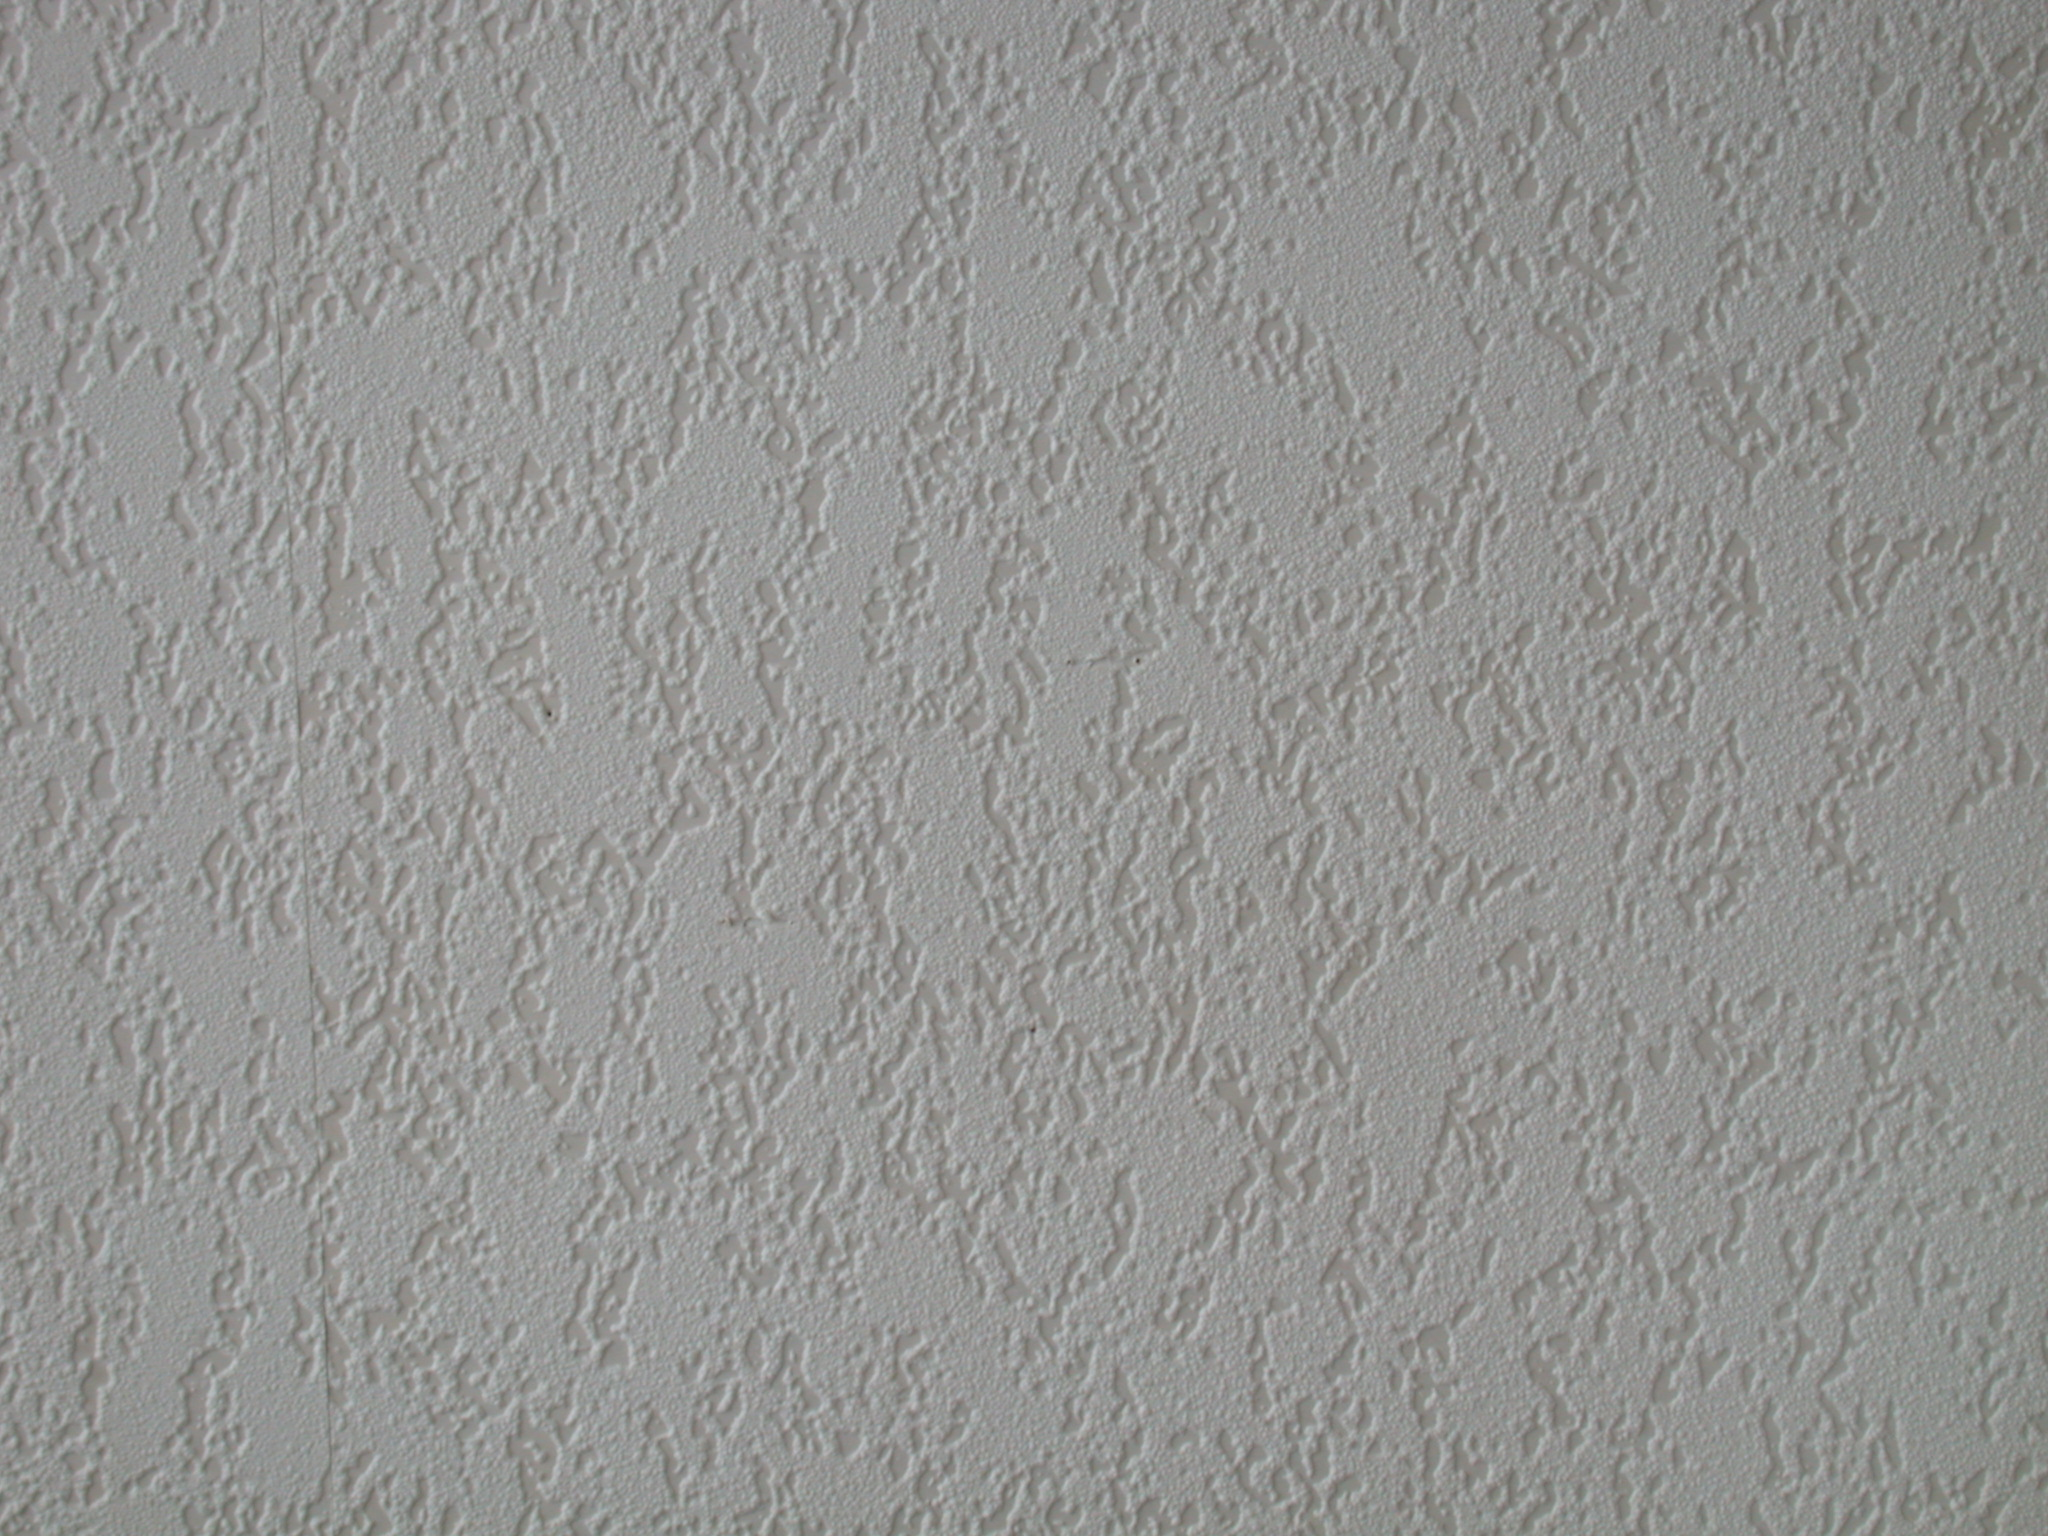 Smooth White Wall Texture White Smooth Wall Texture